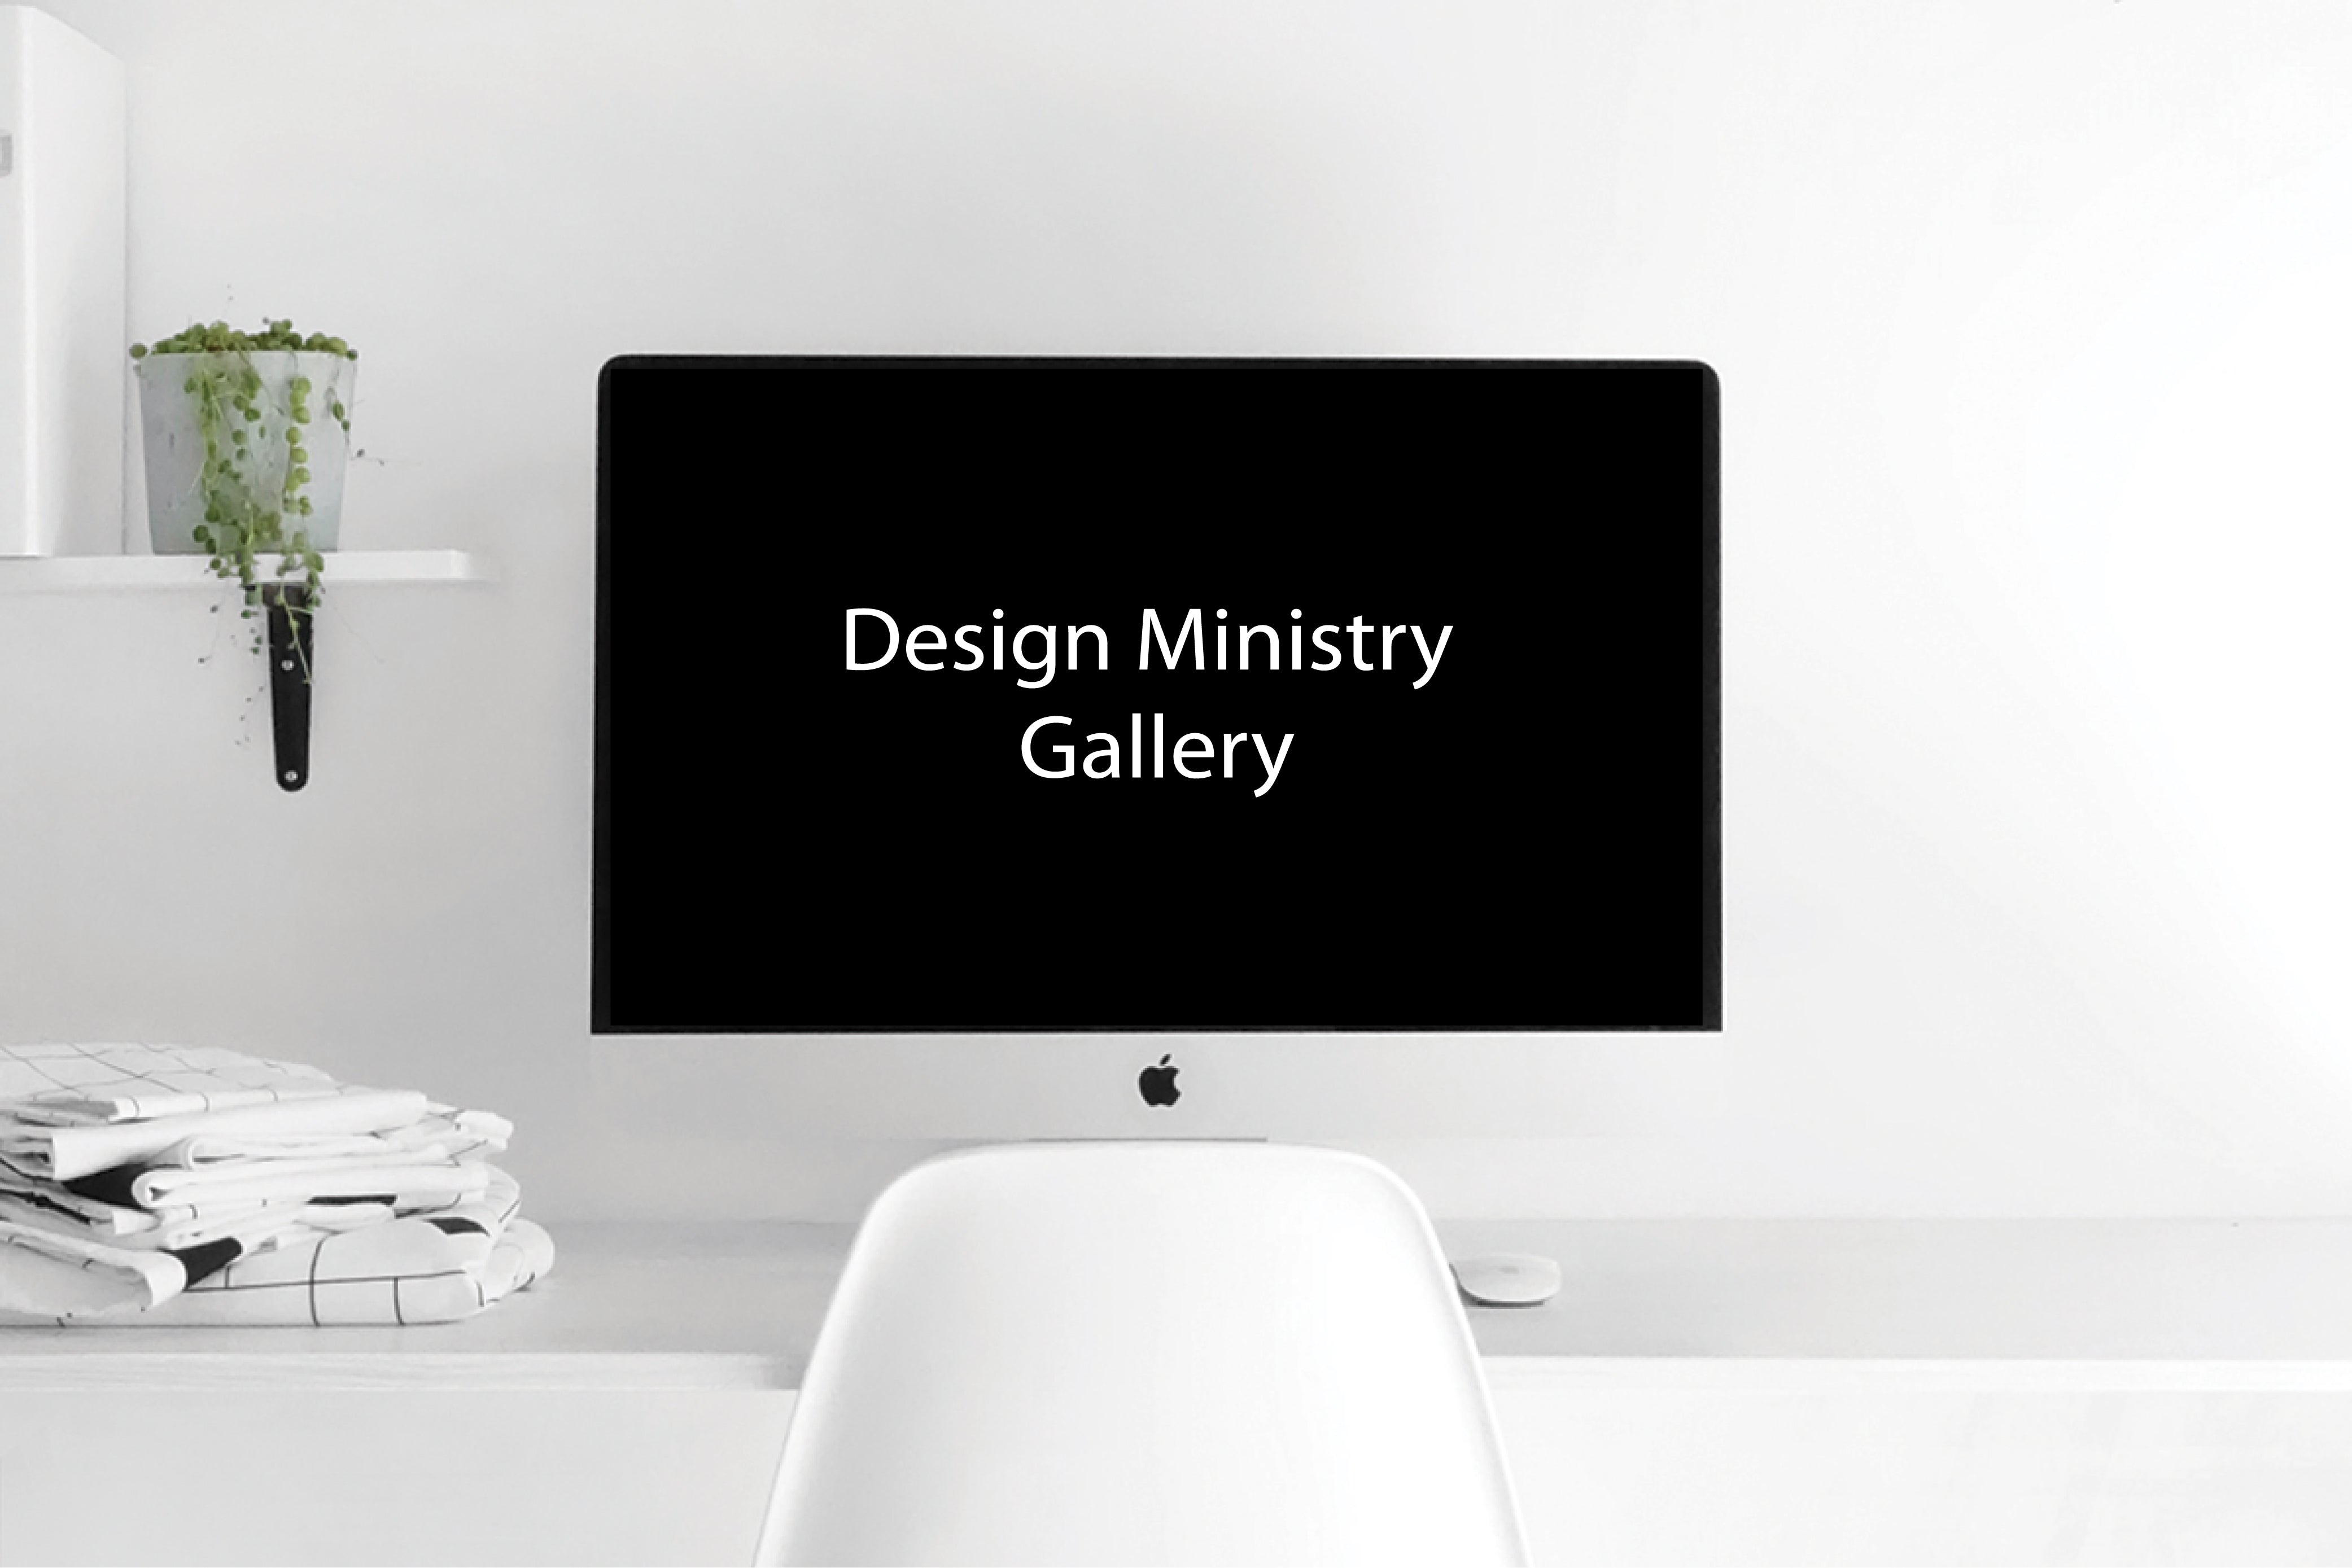 Design Ministry Gallery